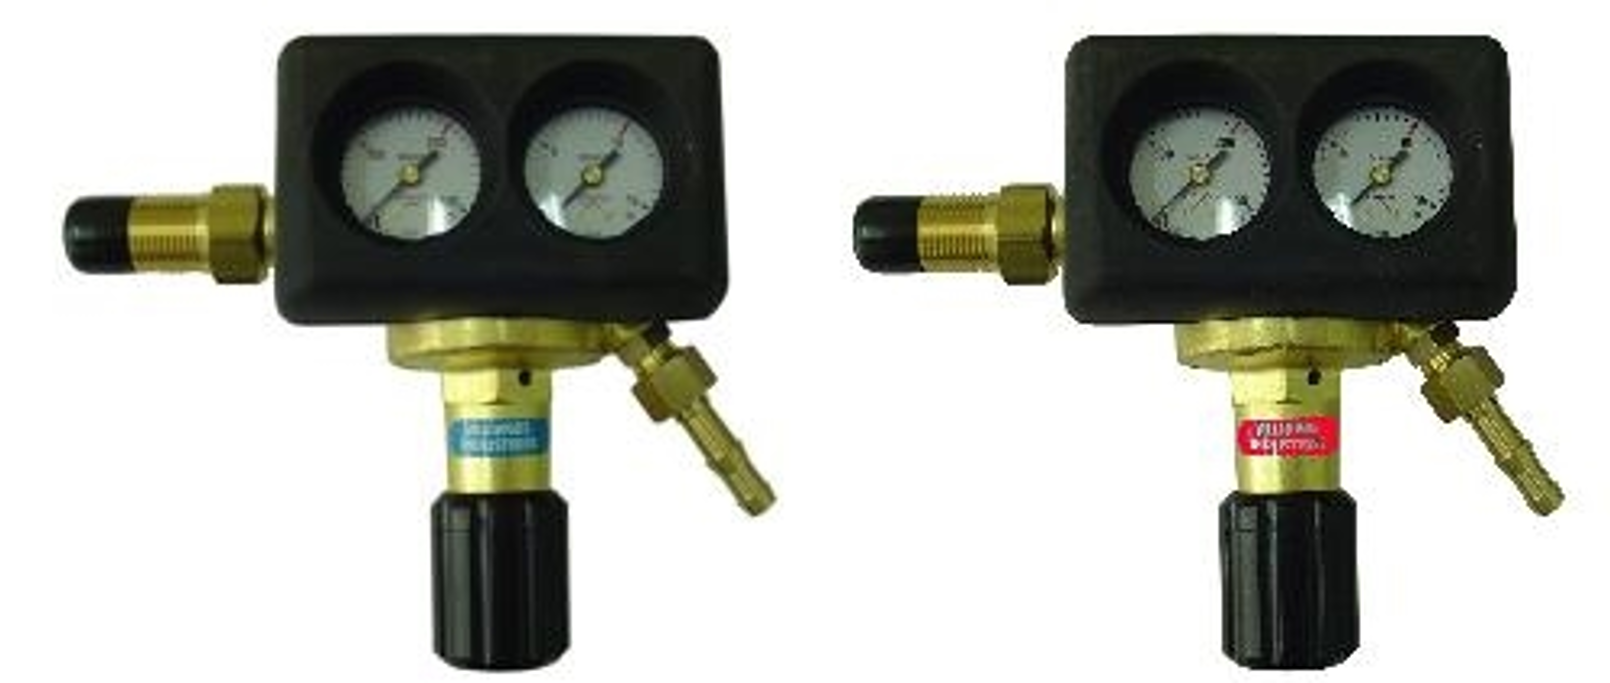 DIS-100 REGULATOR